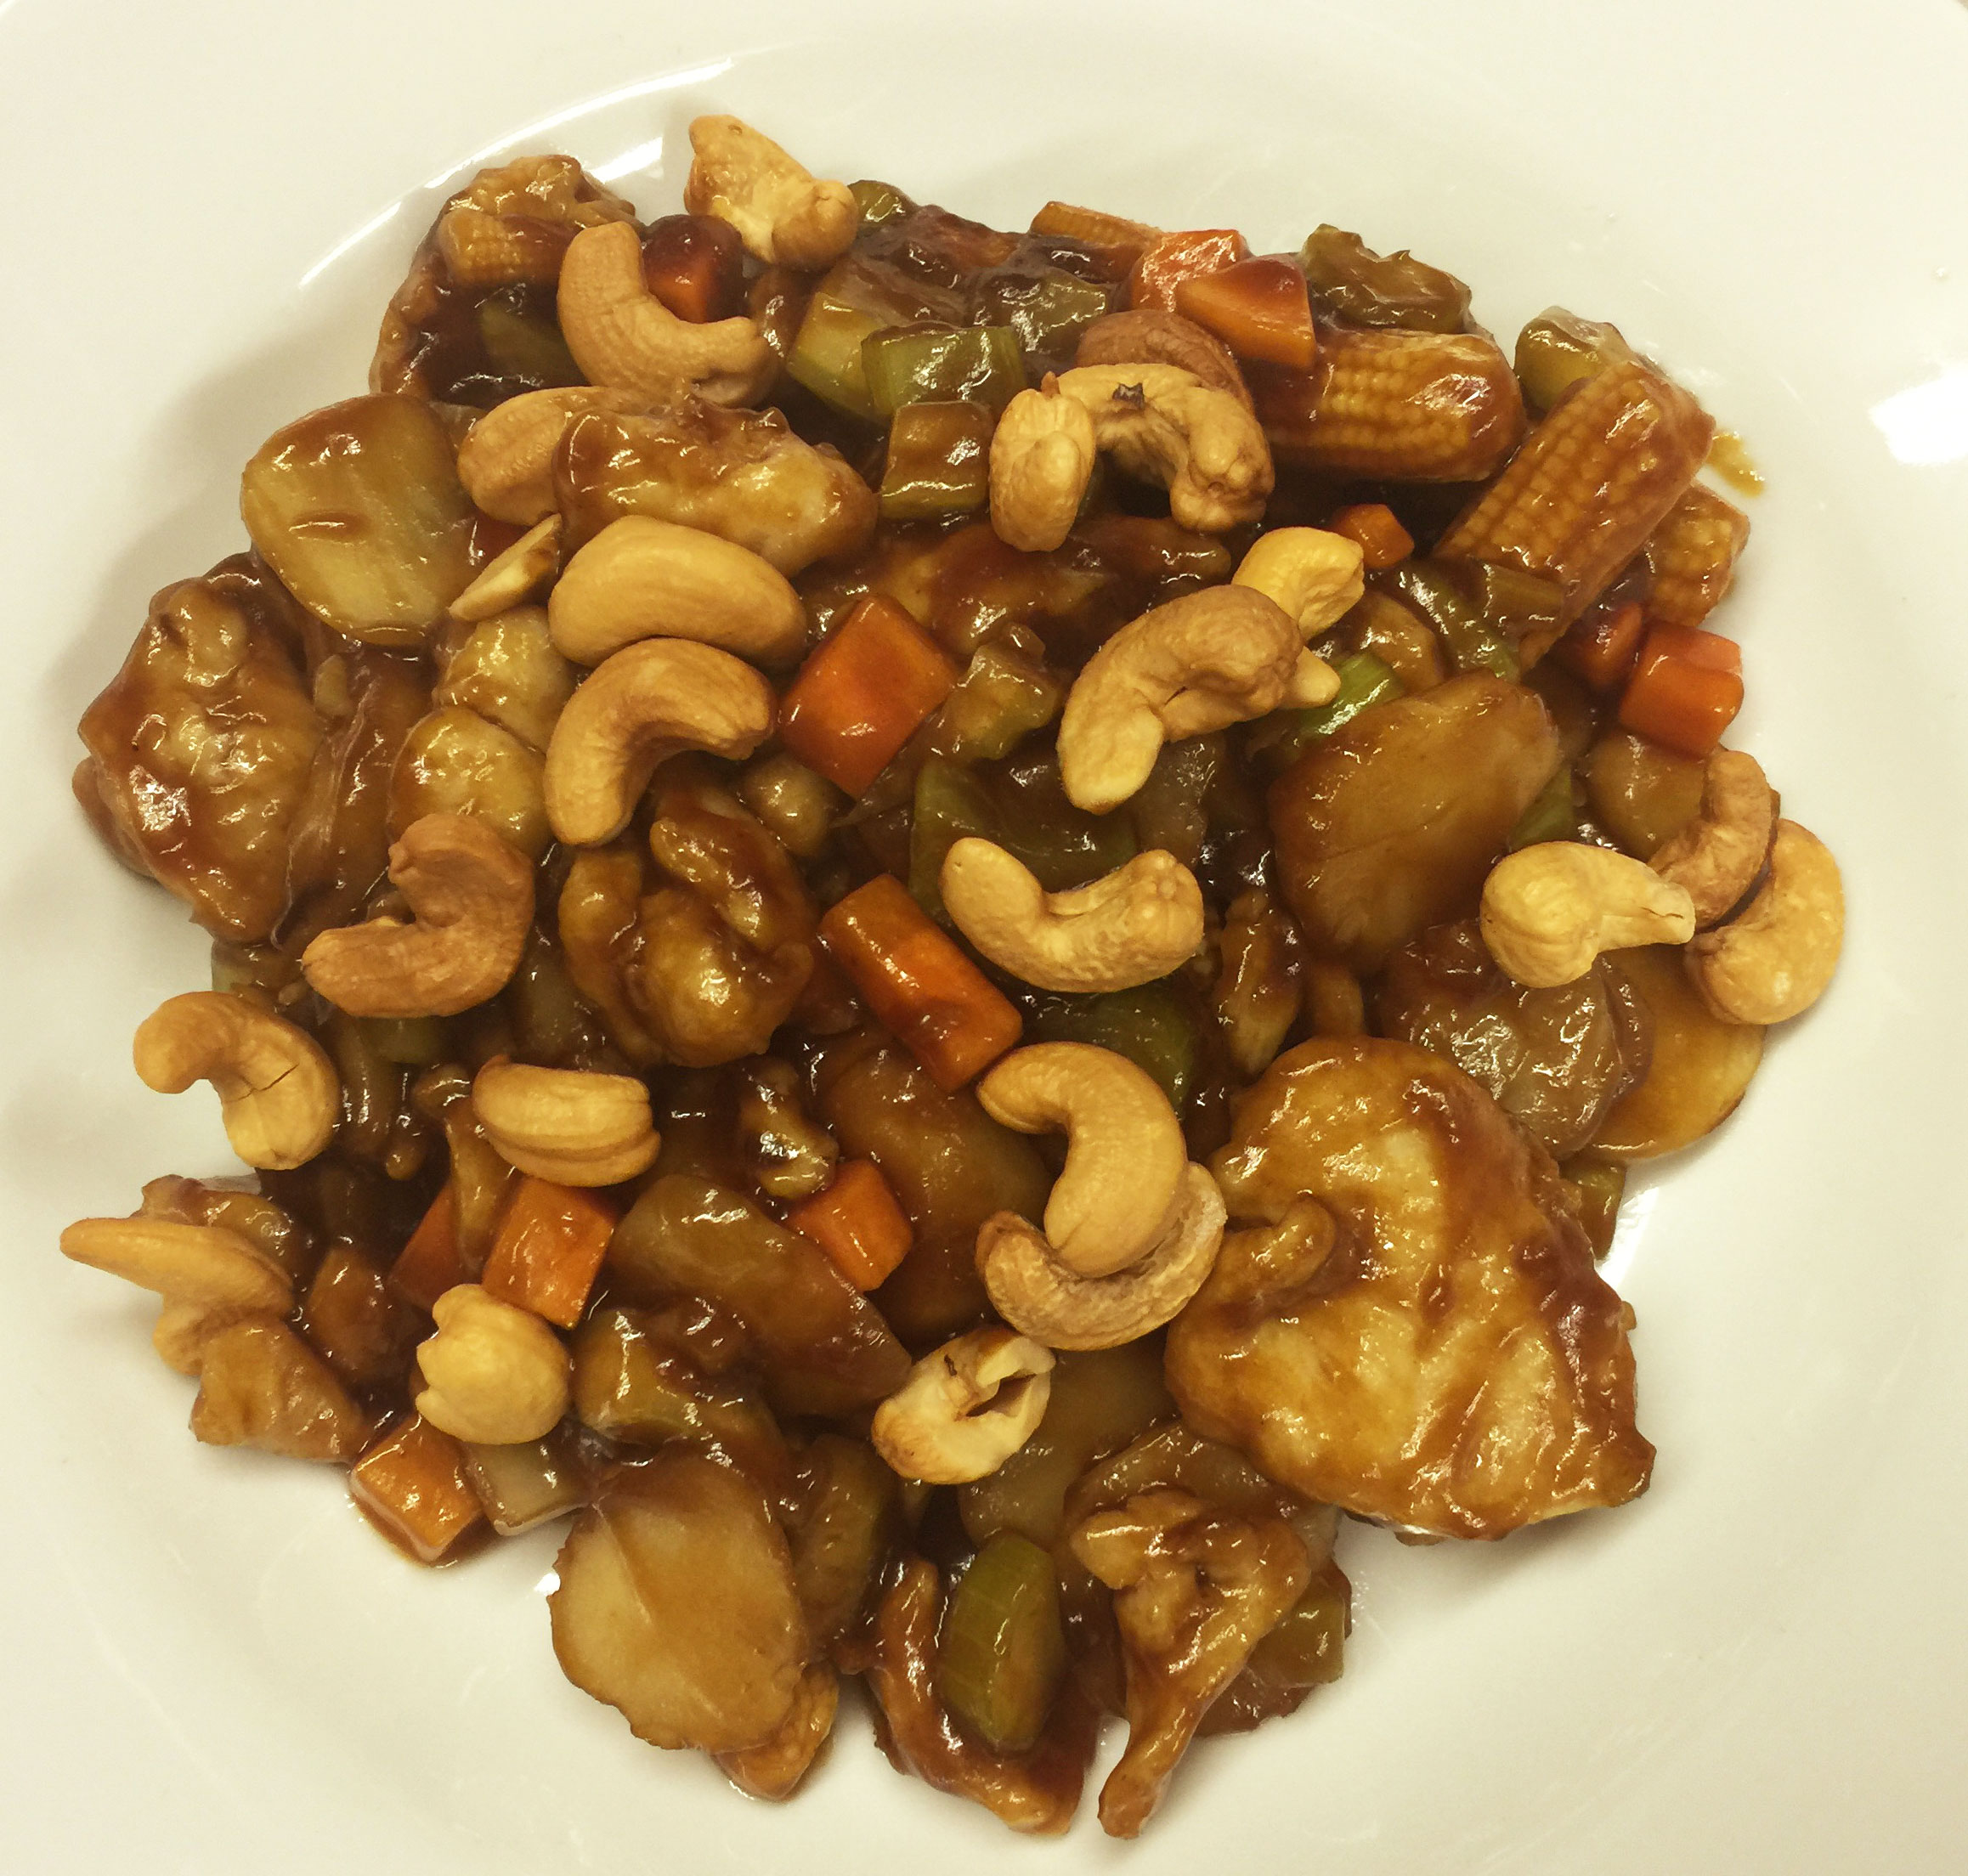 82. Chicken with Cashew Nuts Image